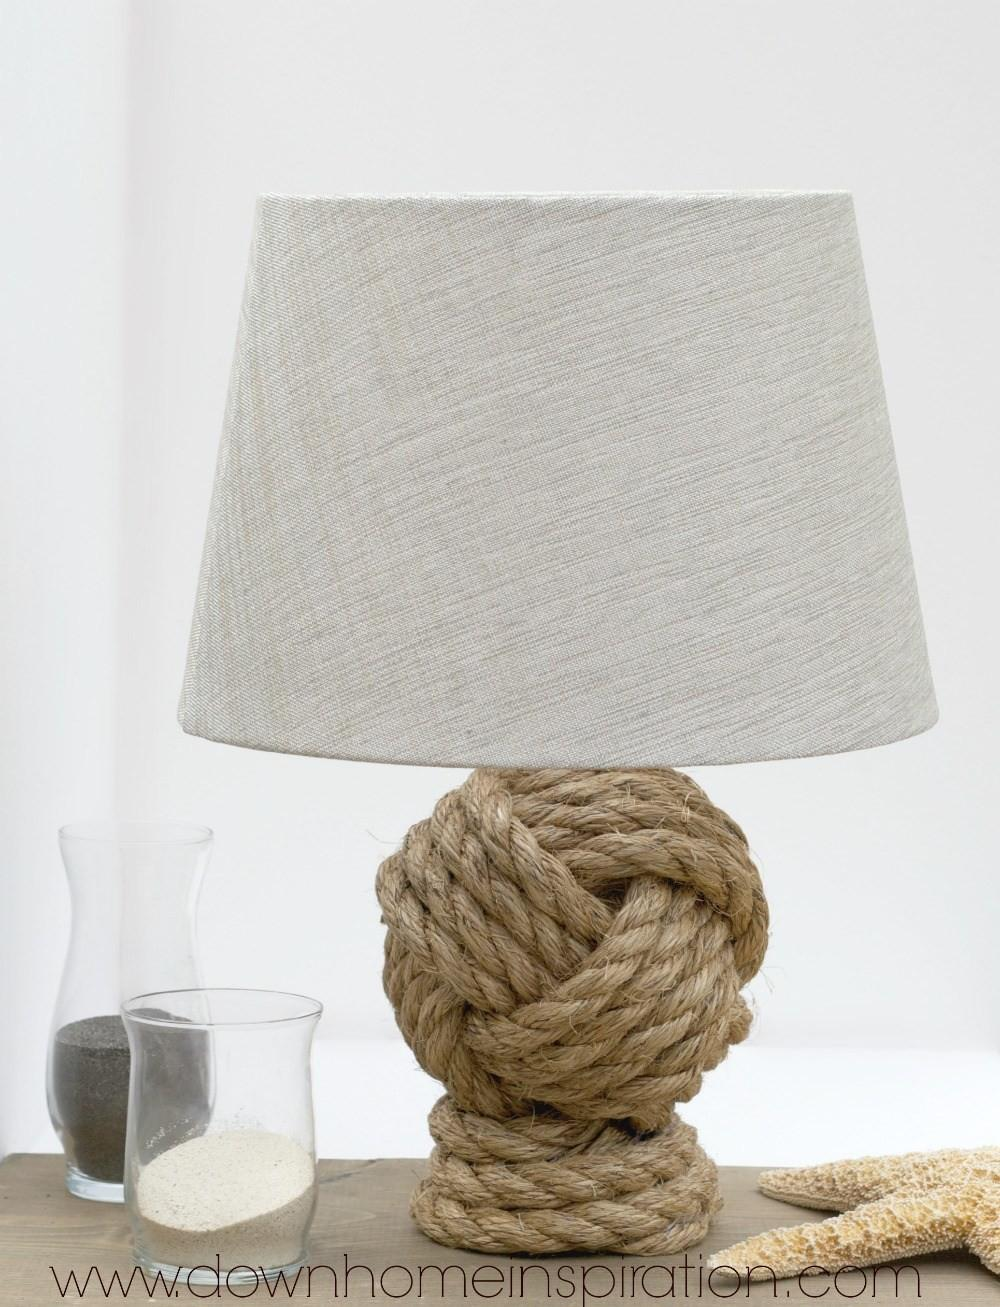 Pottery Barn Knockoff Rope Knot Lamp Down Home Inspiration